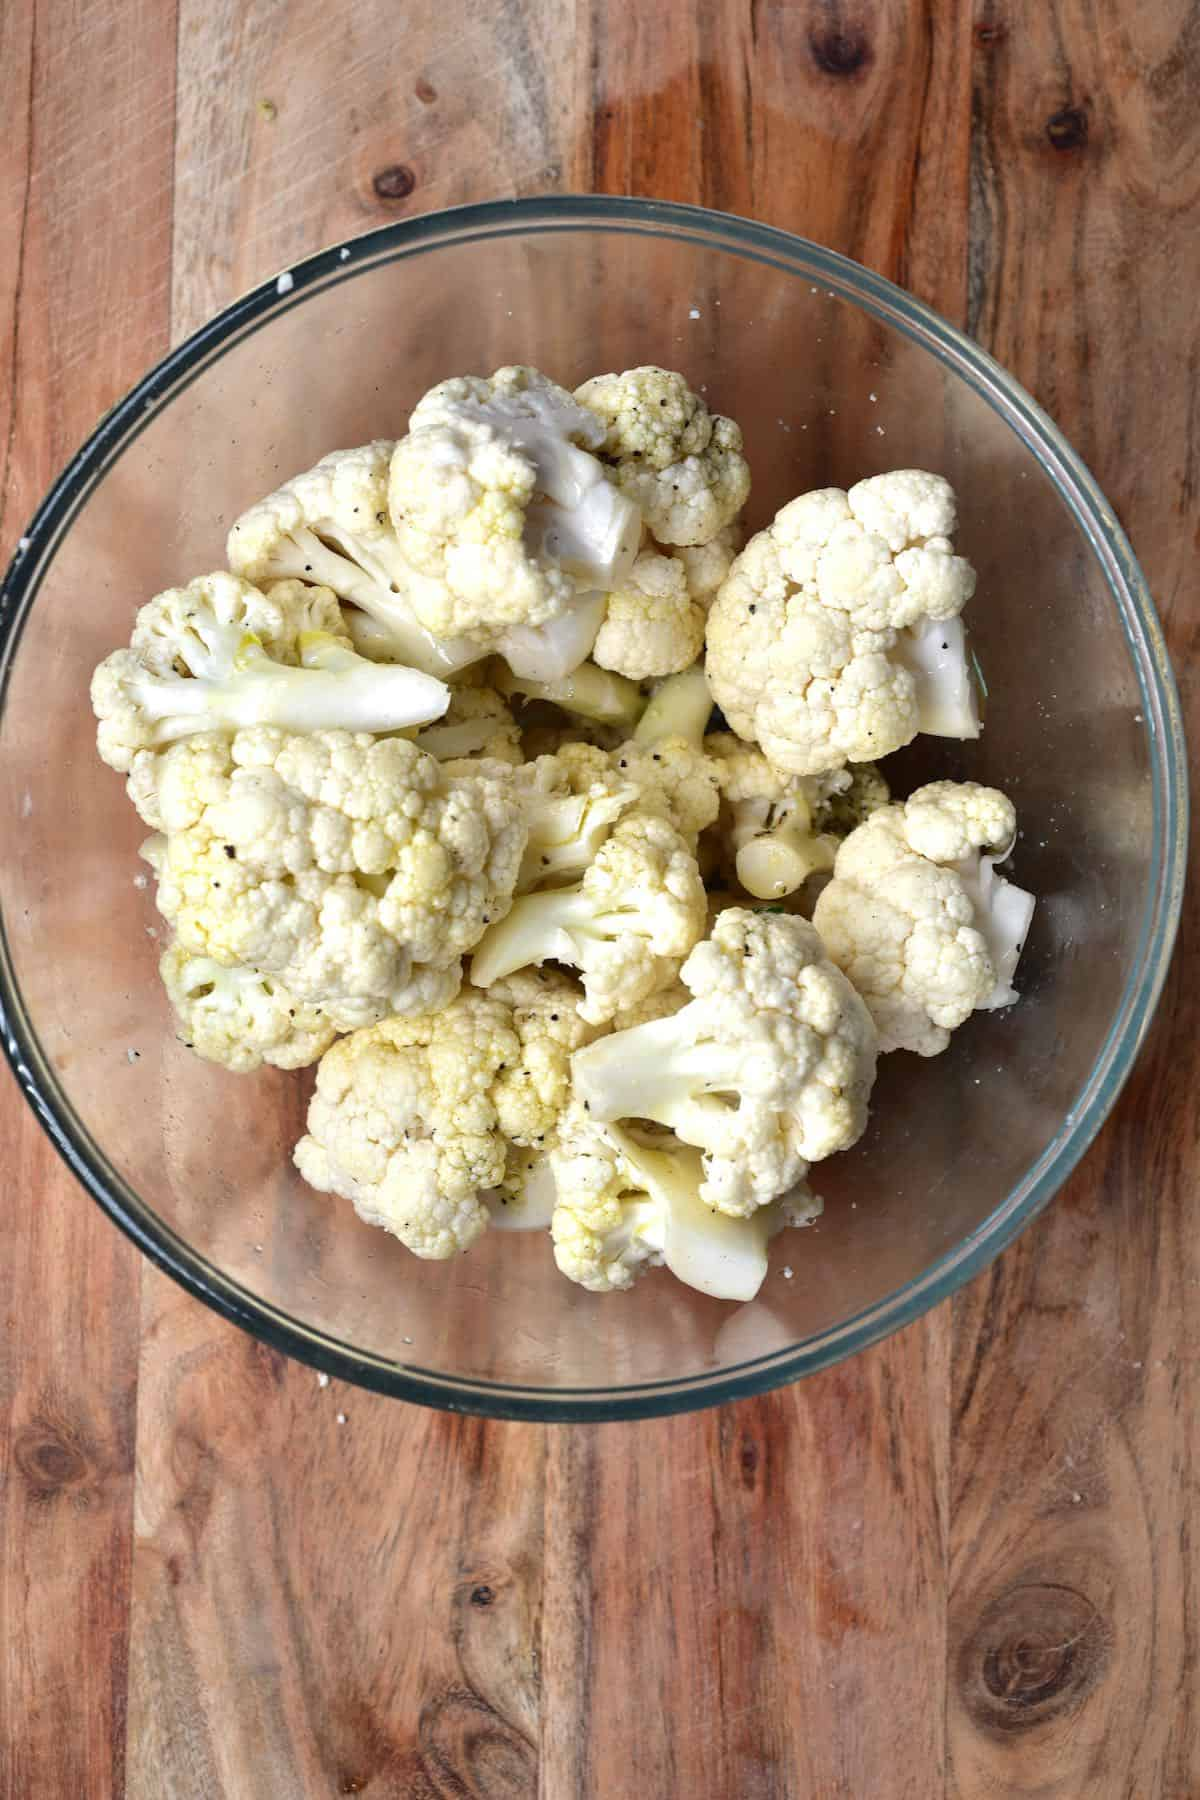 Cauliflower florets coated with oil and spices in a glass bowl